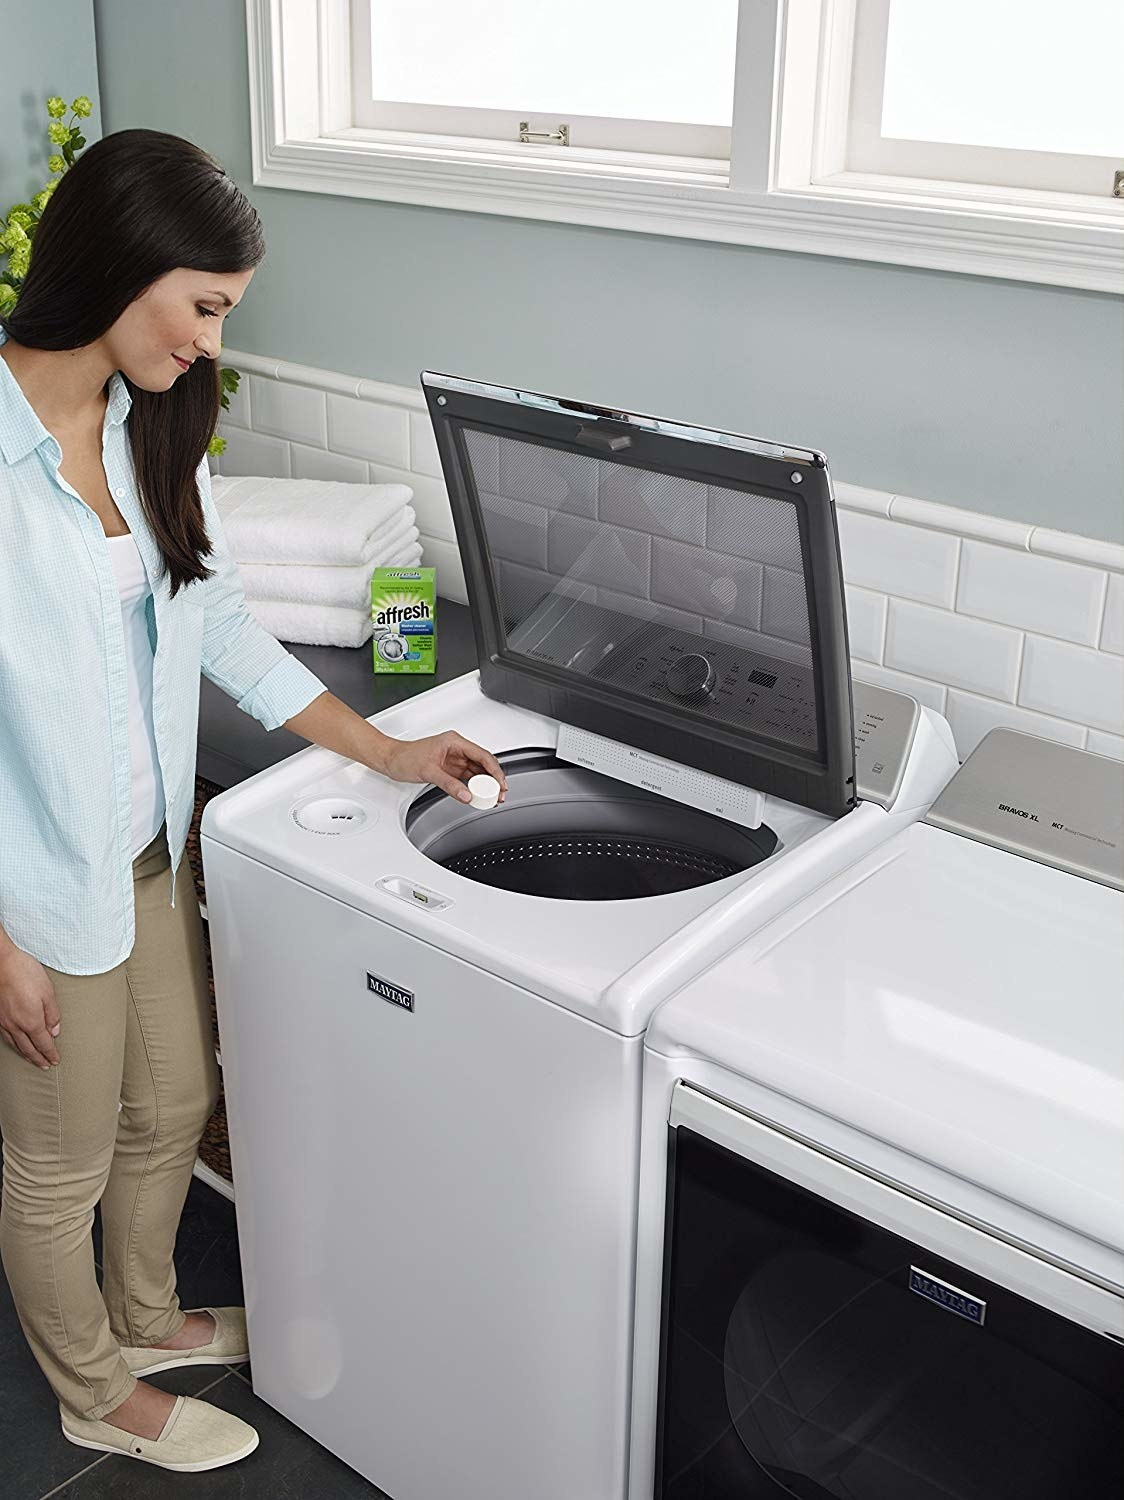 model putting a cleaning tablet into a top-load washing machine